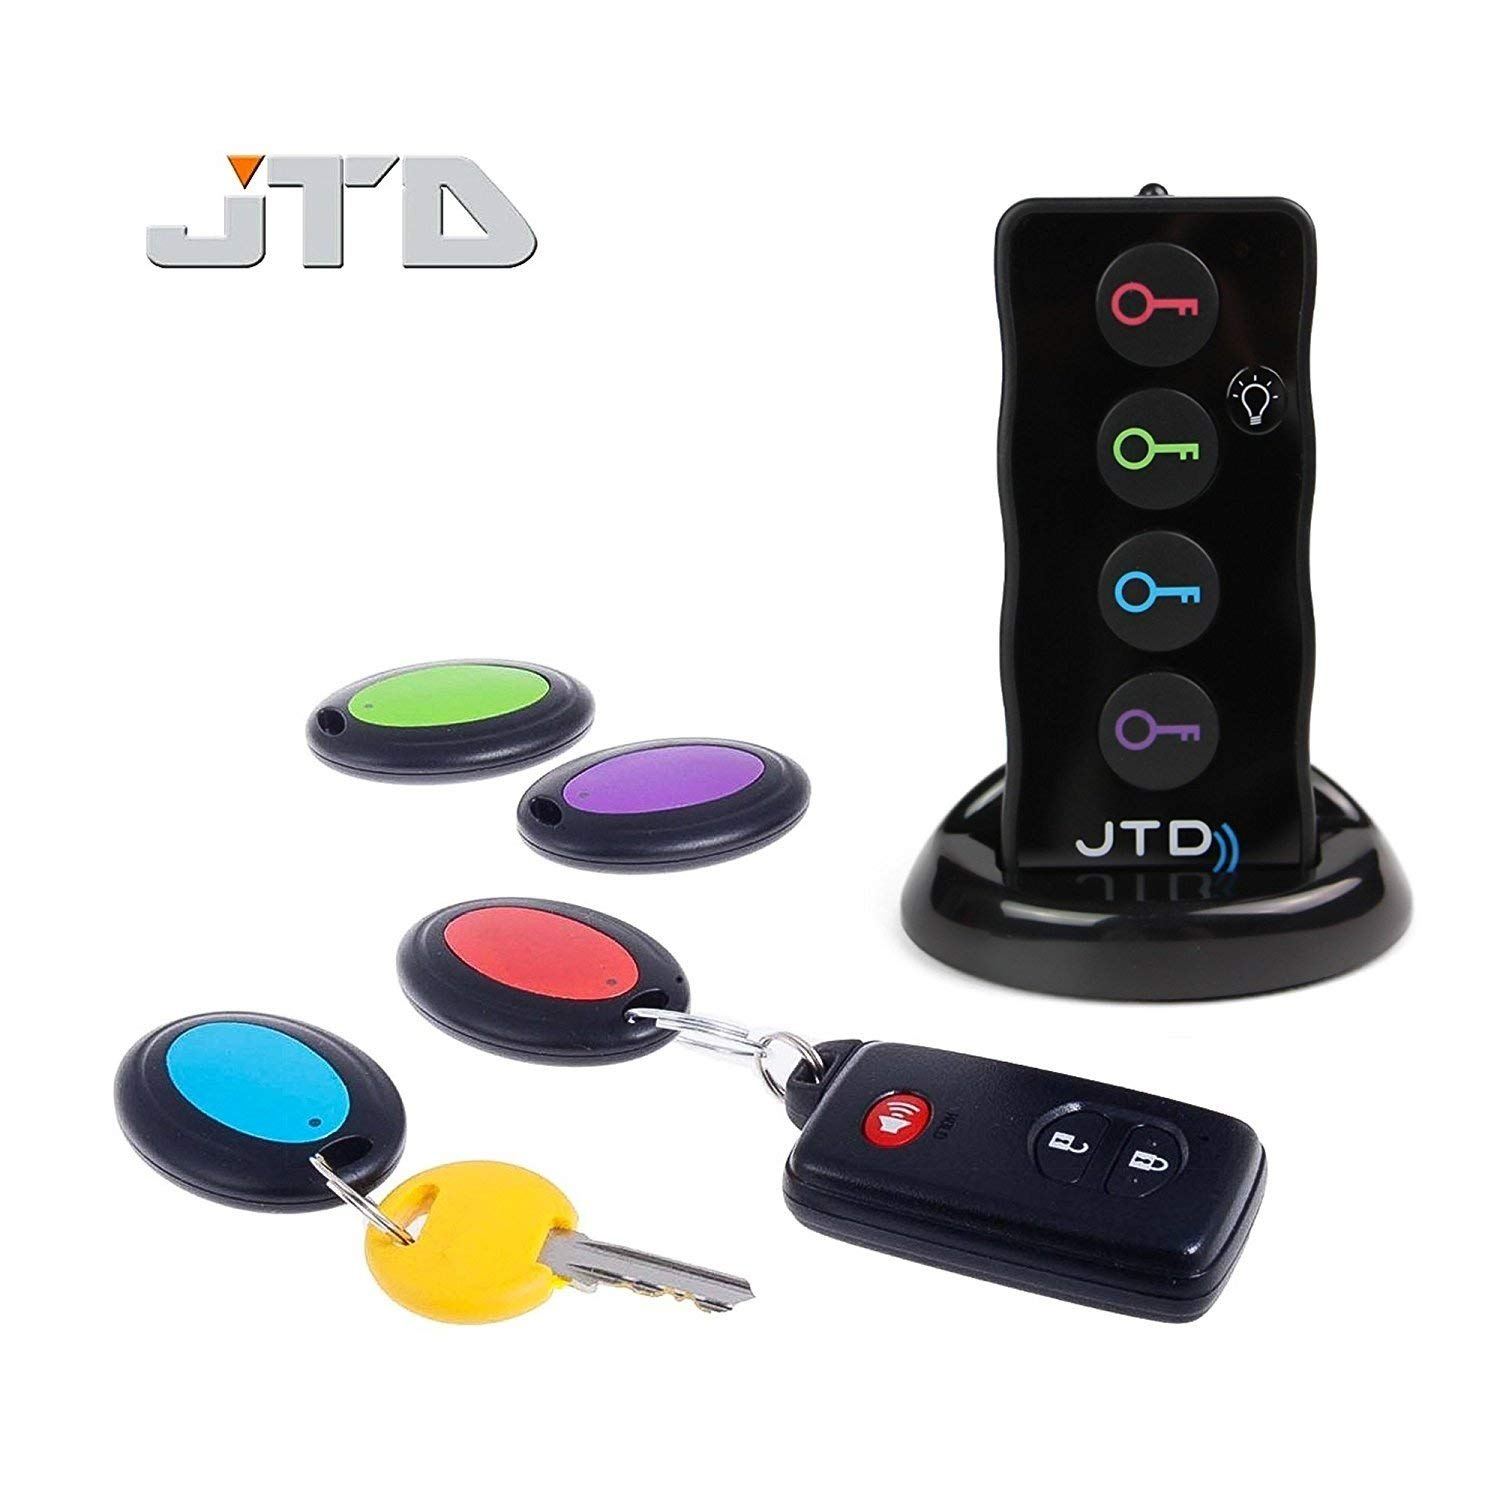 JTD Wireless Key Finder and Locater